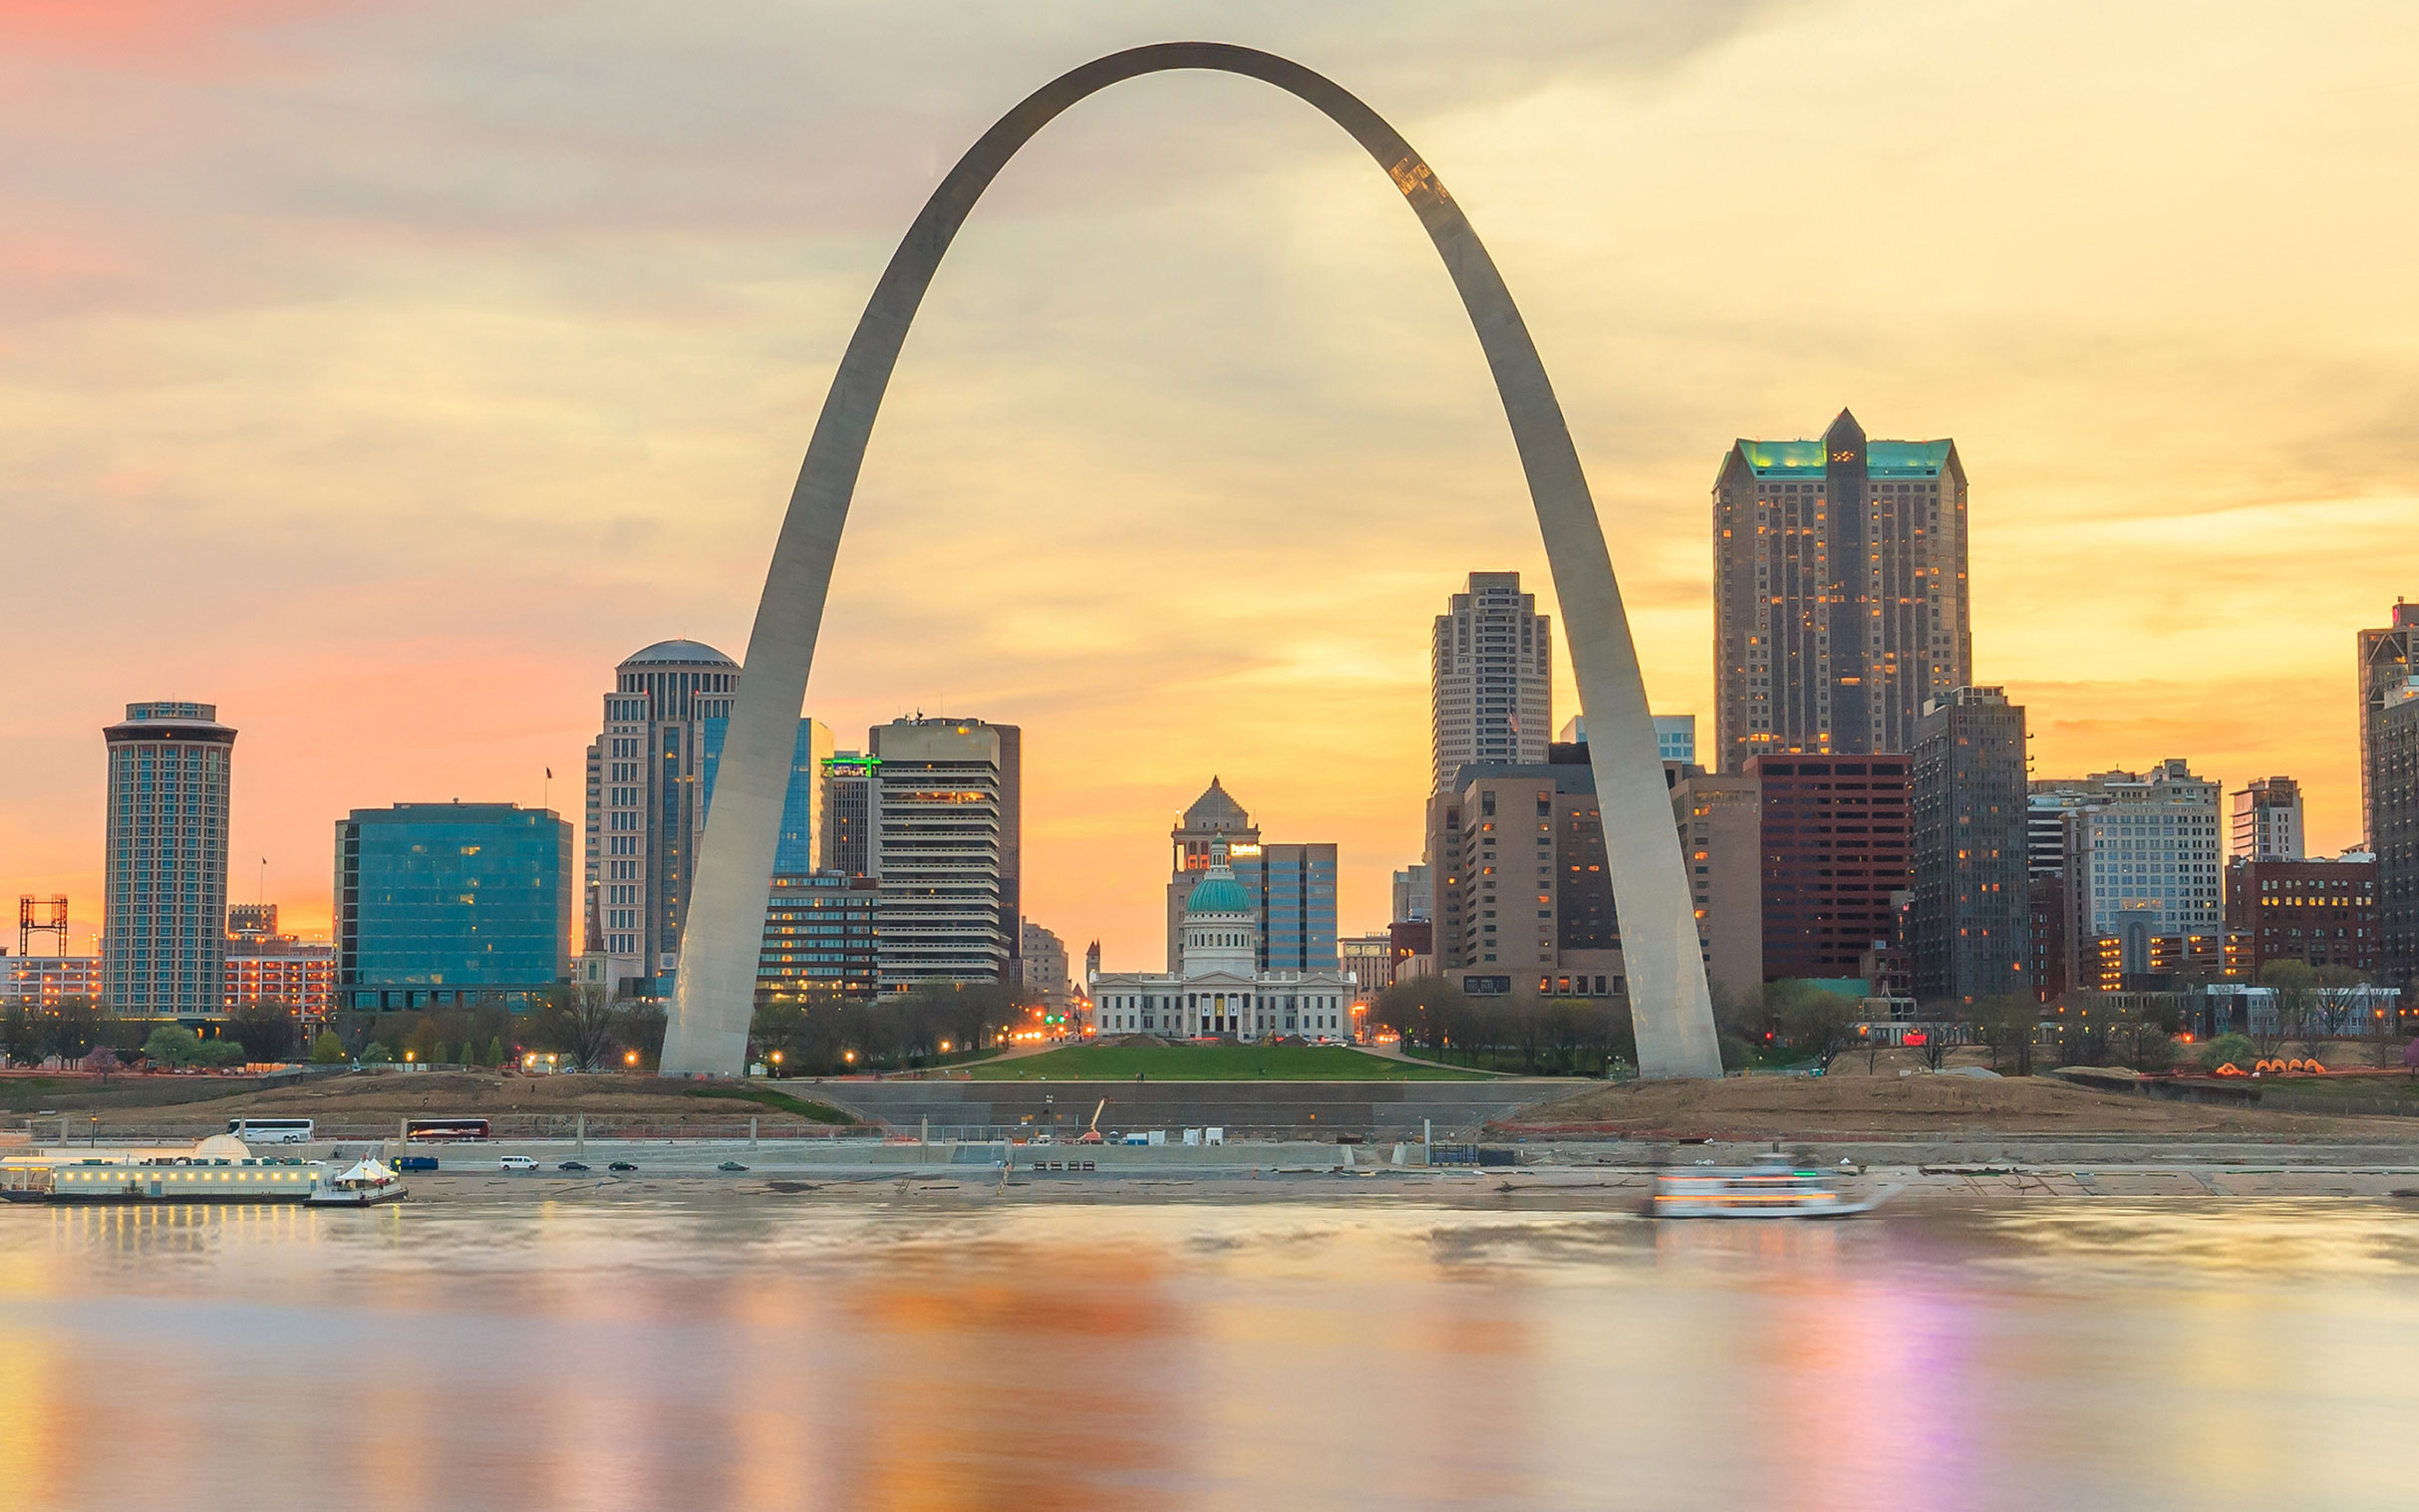 Downtown St. Louis sunrise over Mississippi River